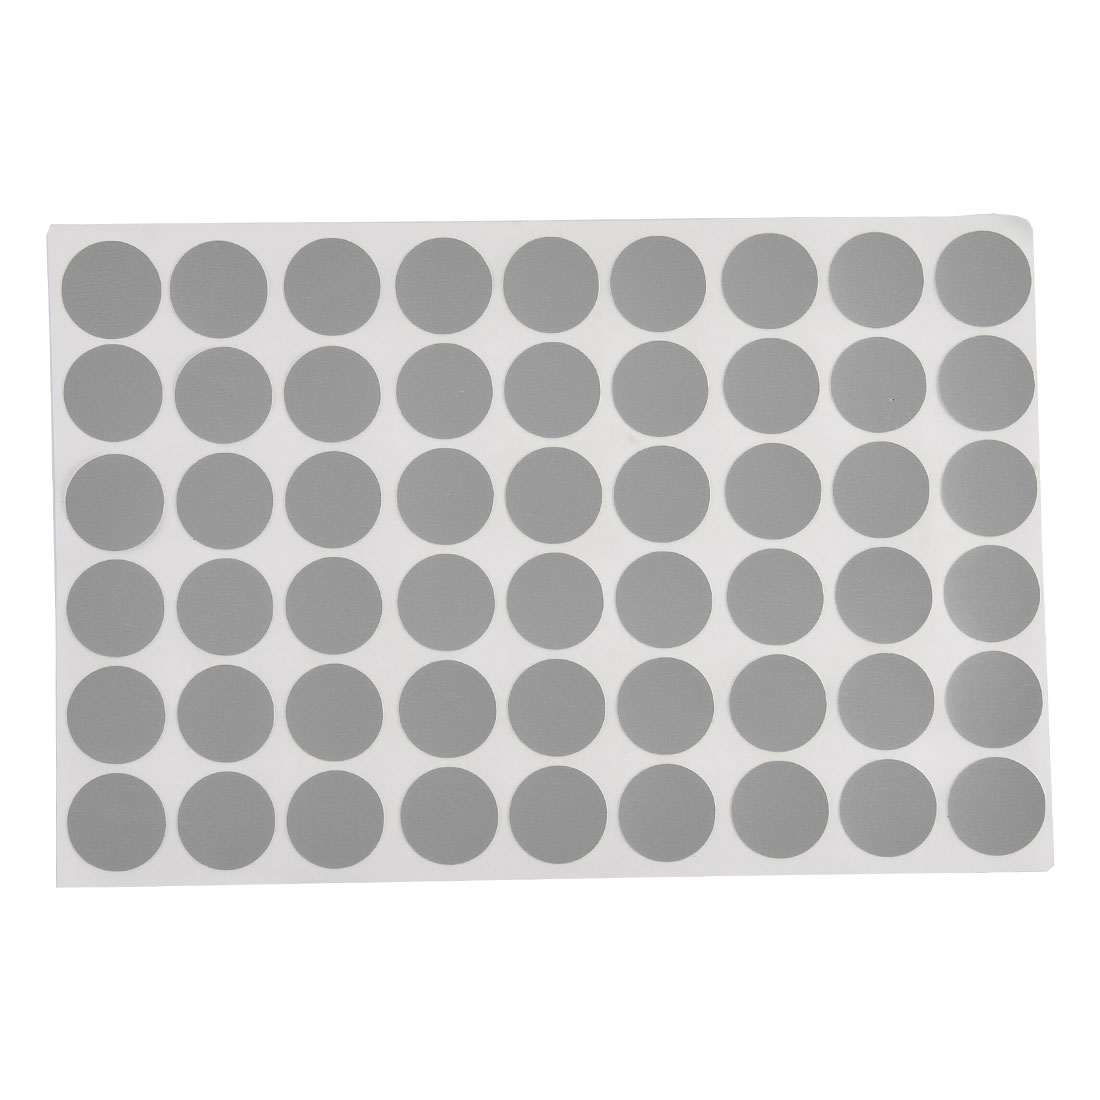 21mm Dia Furniture Self-adhesive Screw Hole Stickers Covers Matte Gray 54 in 1